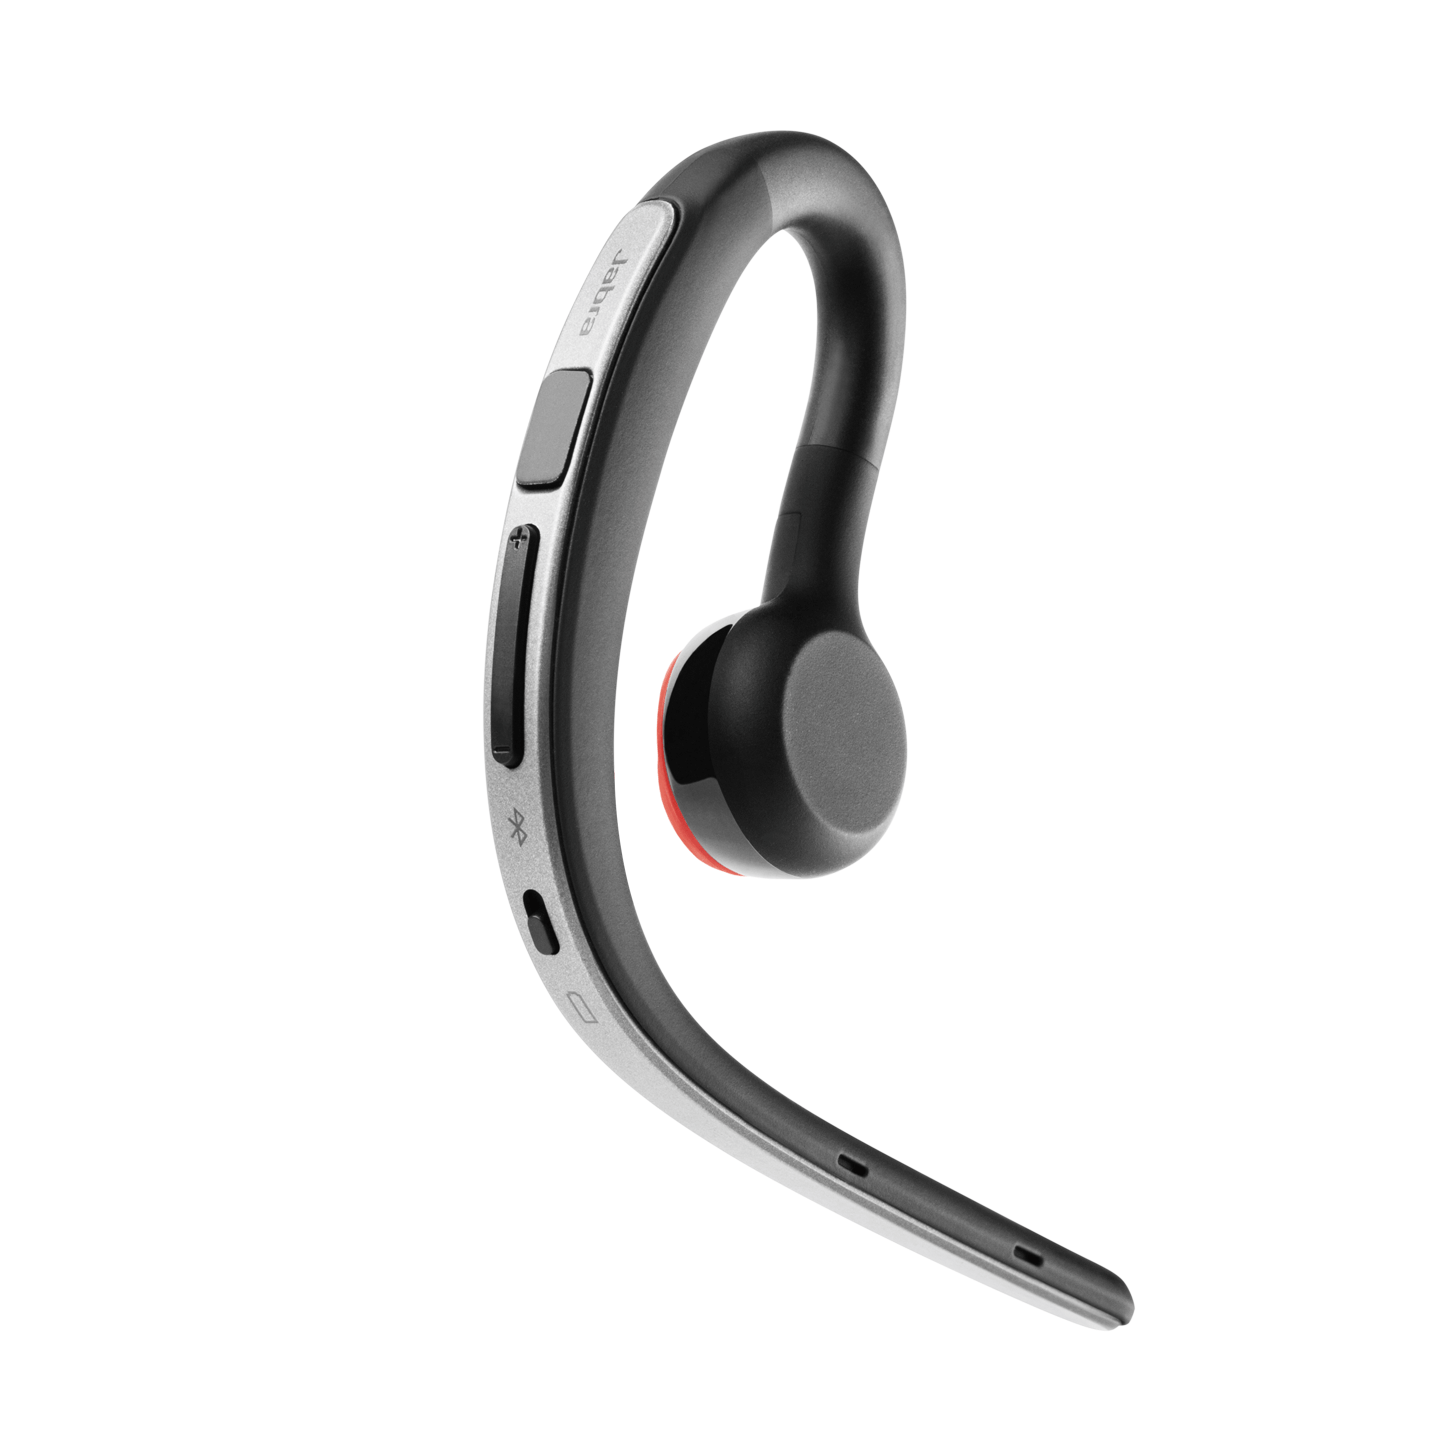 Jabra Steel A Bluetooth Headset Specifically Designed: A Light And Comfortable Headset